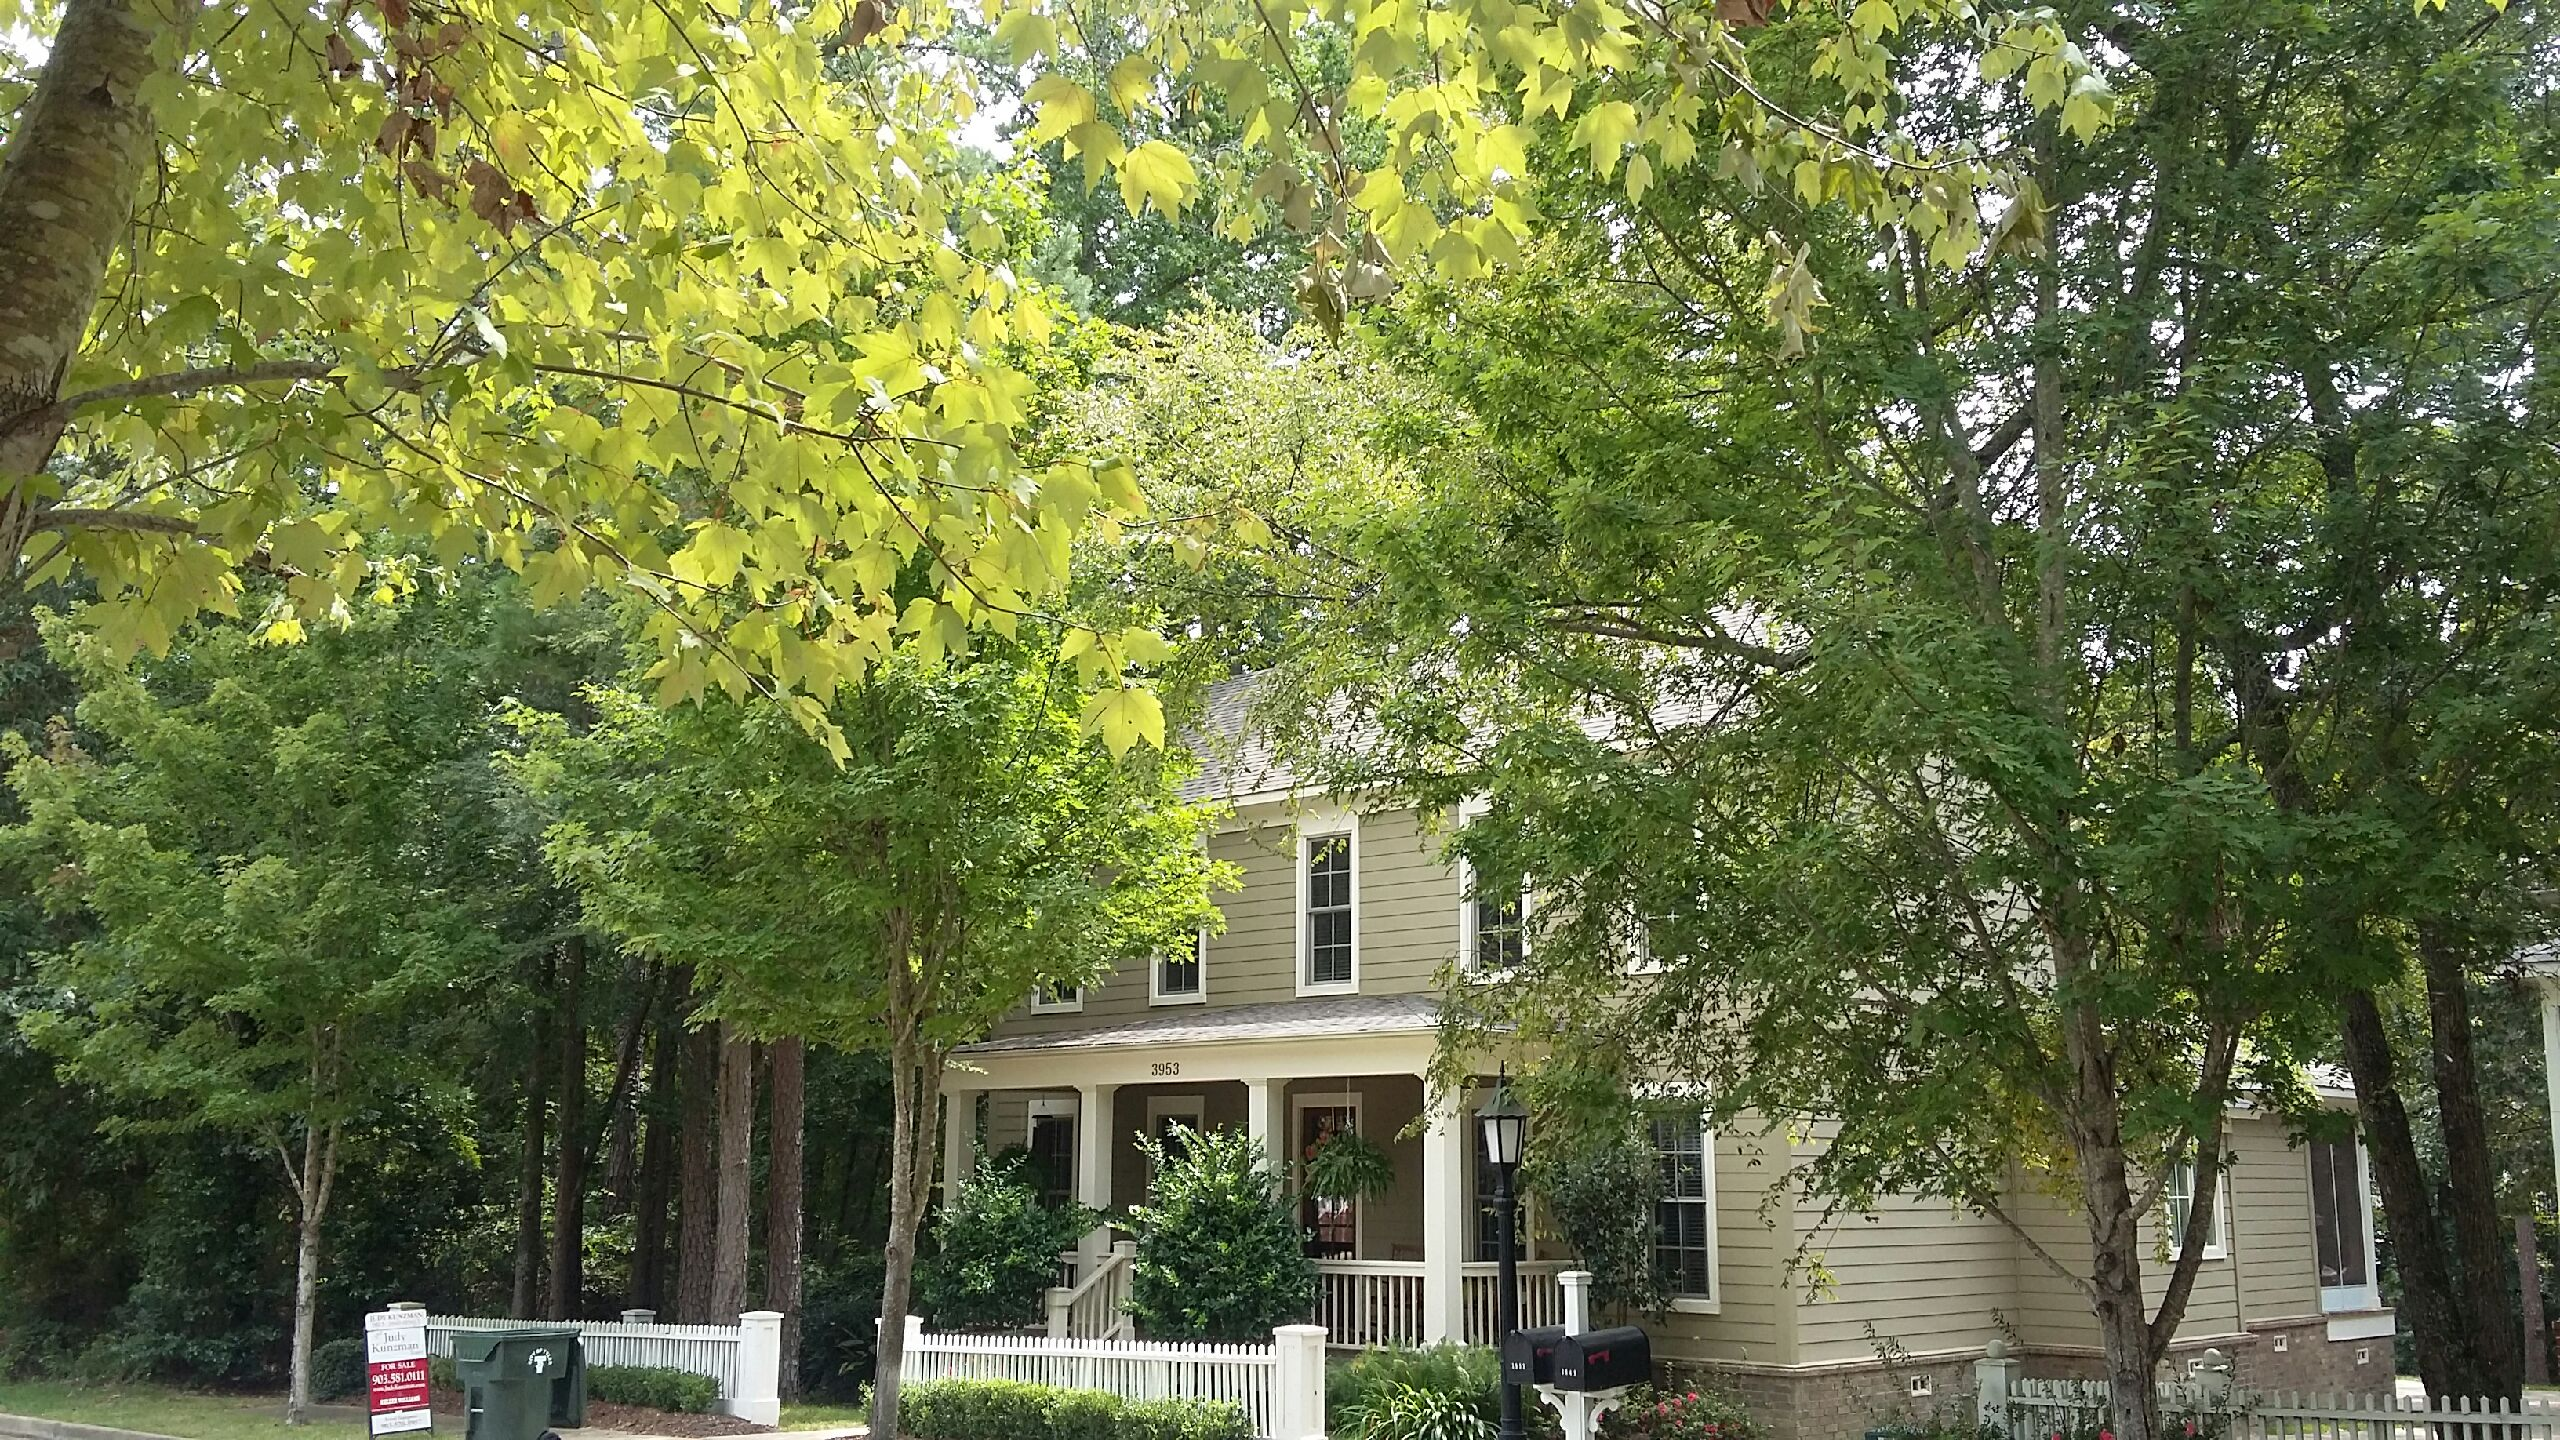 House And Home: A well b uilt house in a wooded area of the suburbs.